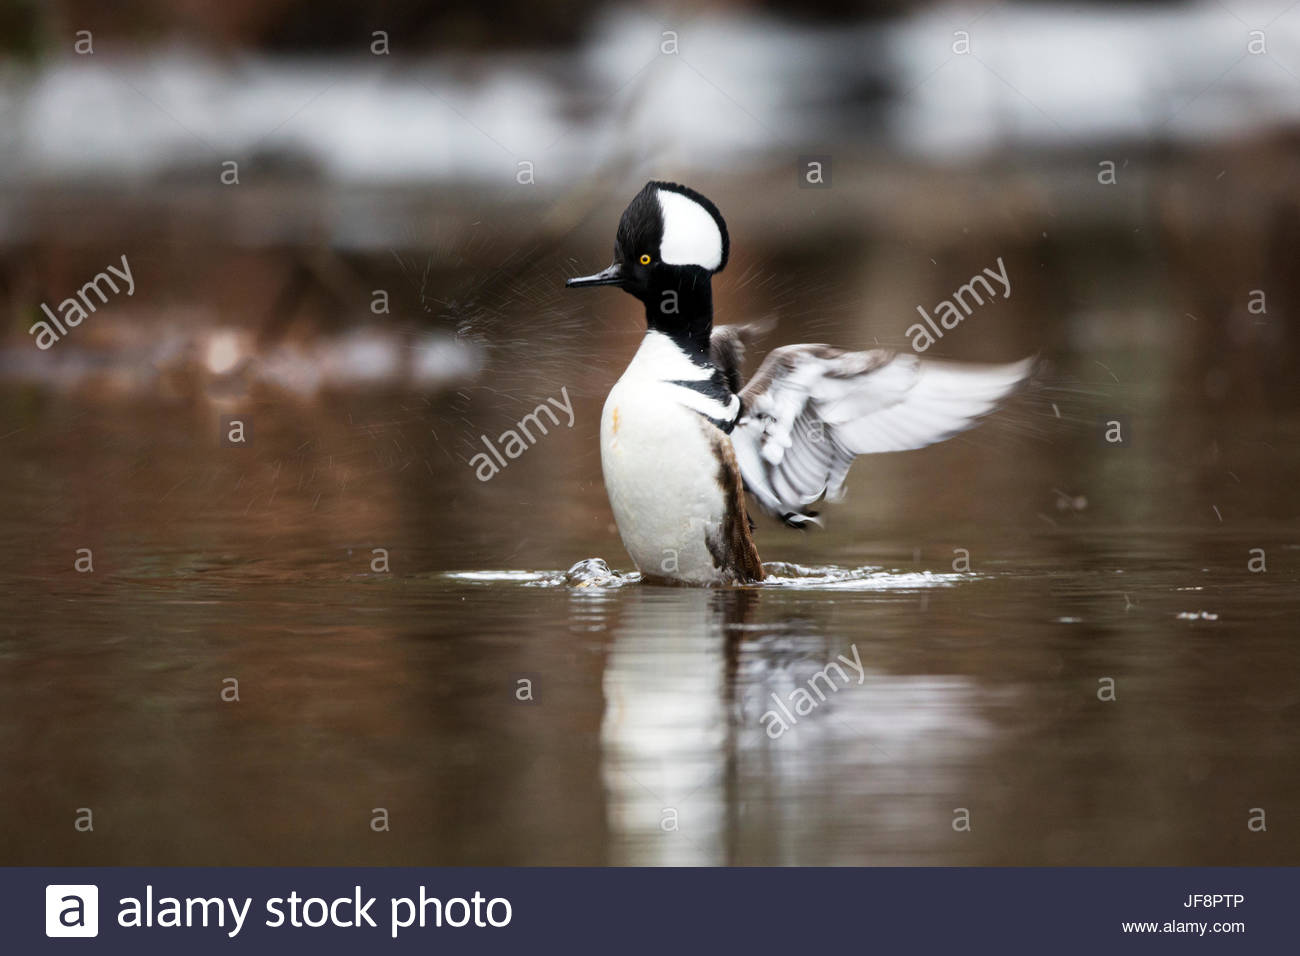 A hooded merganser, Lophodytes cucullatus, flapping its wings in the water. - Stock Image